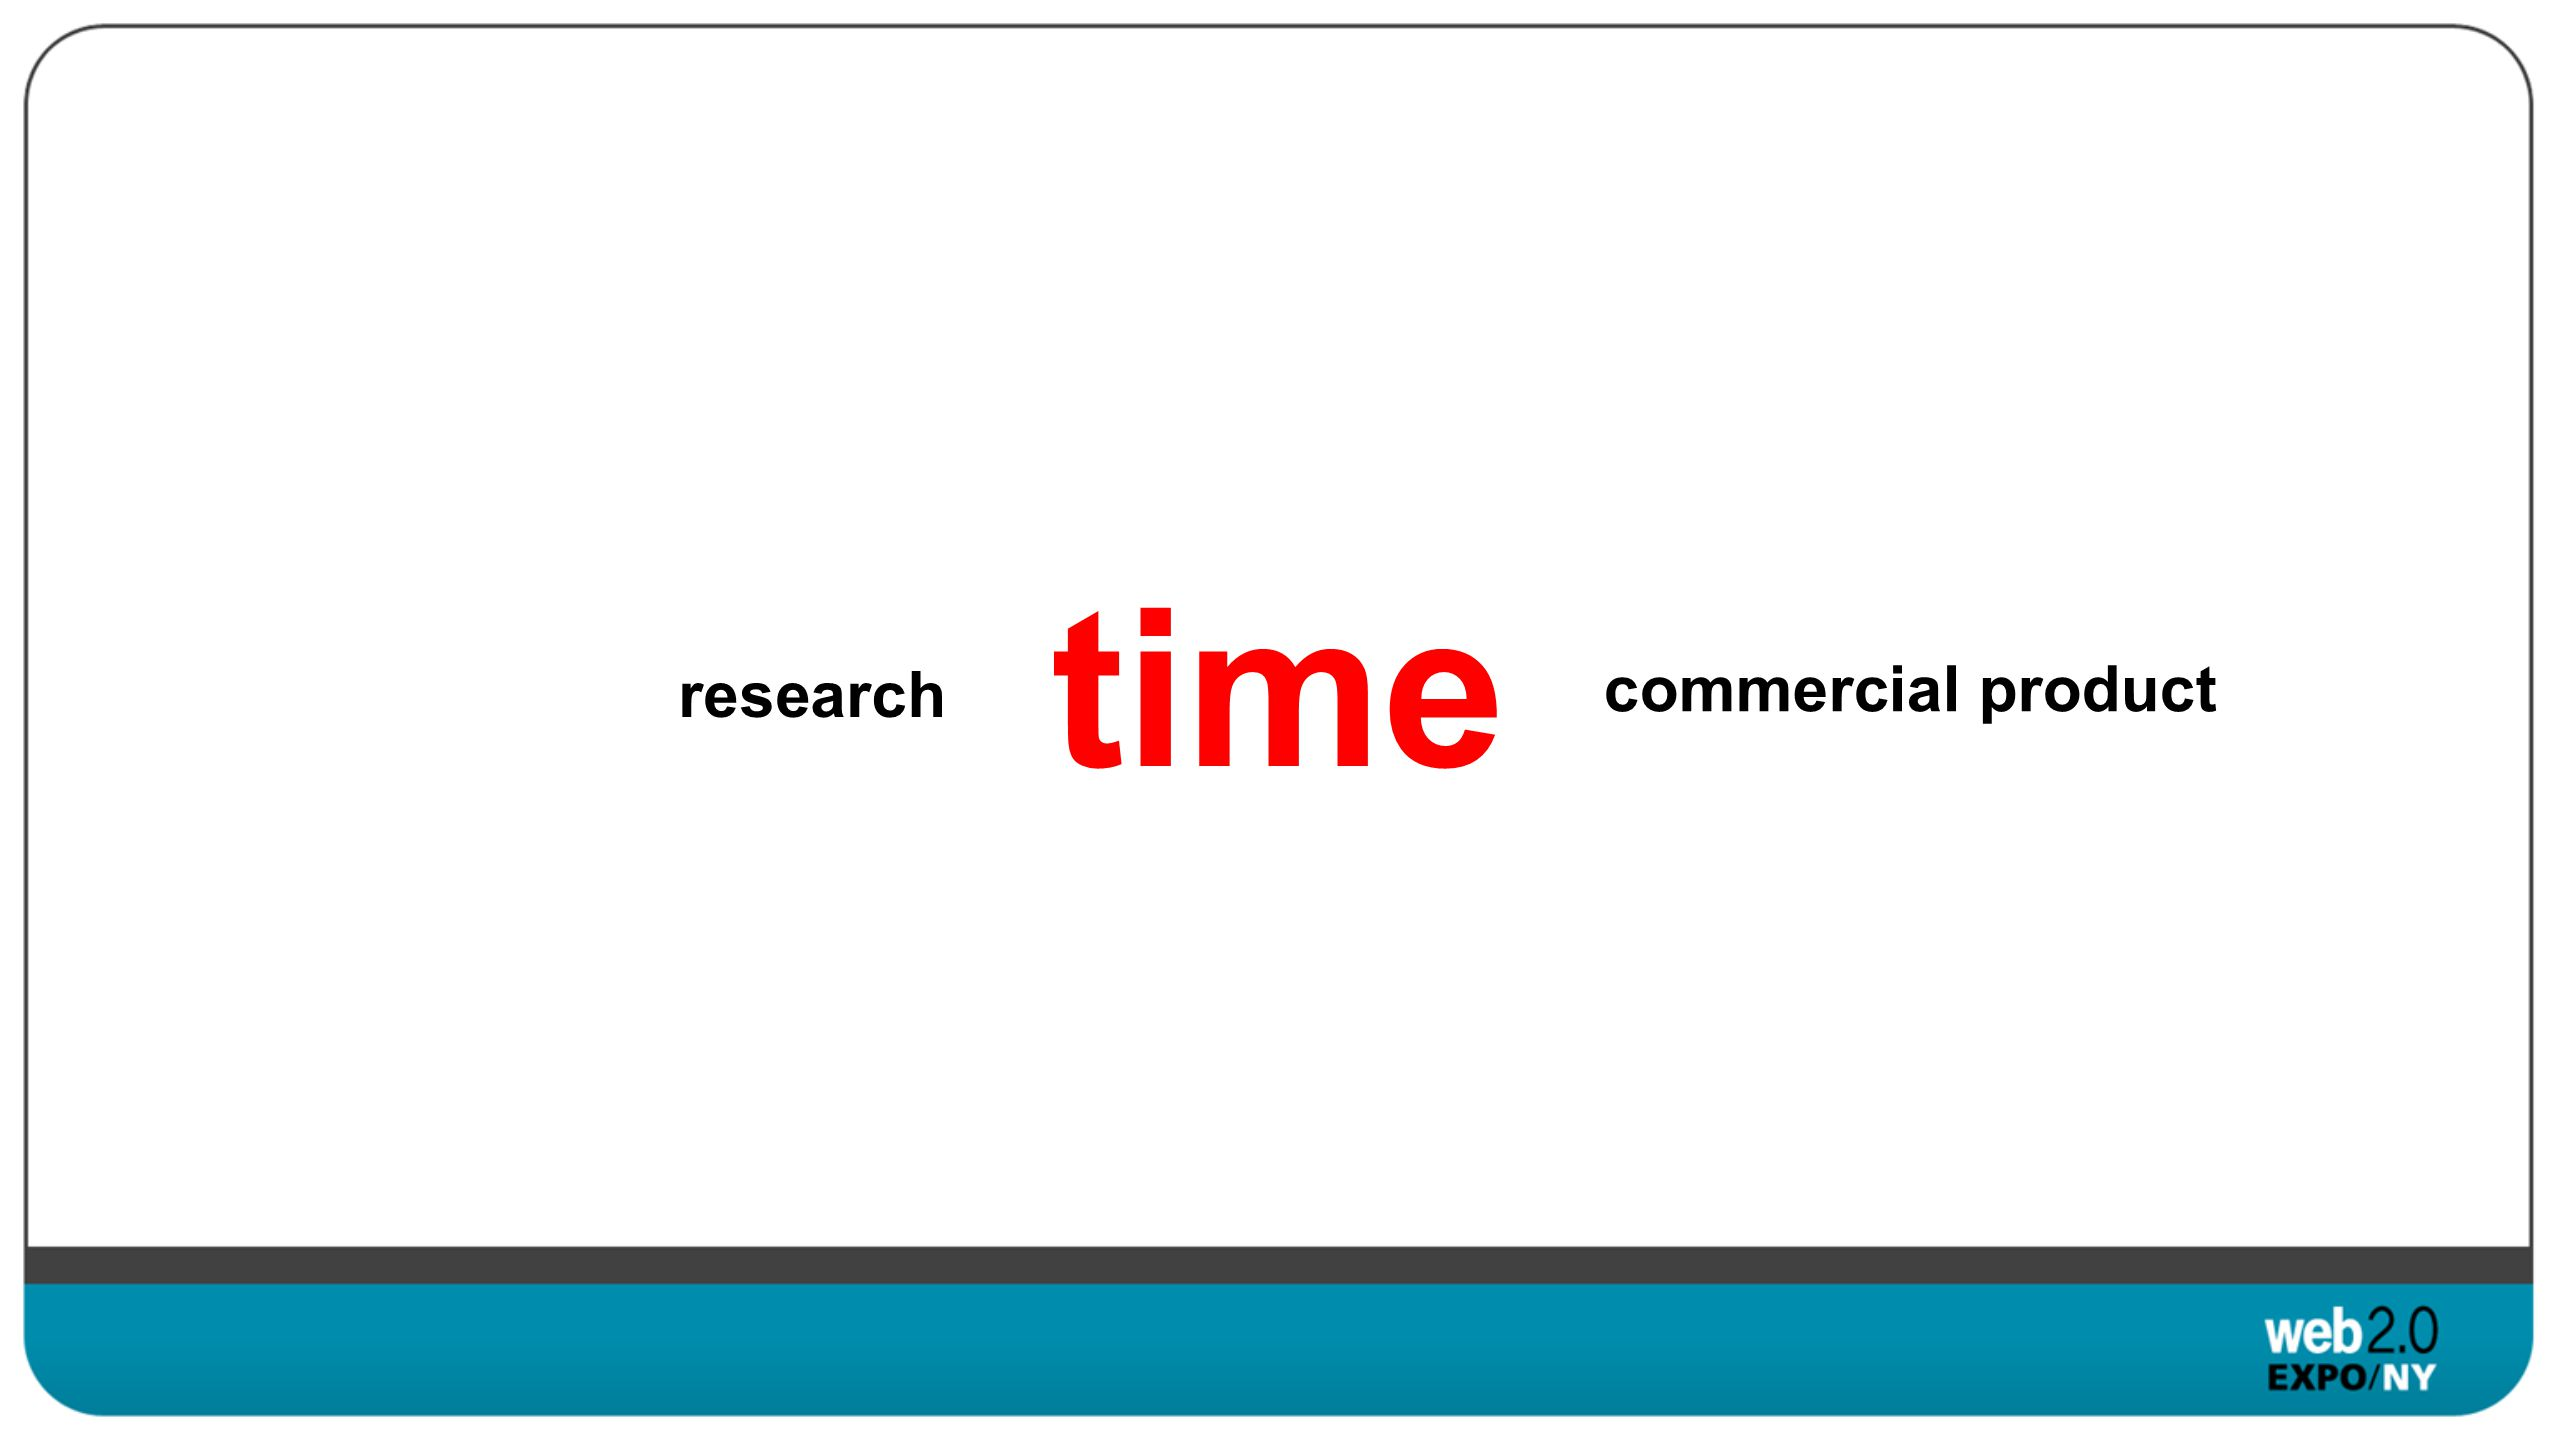 time commercial product research